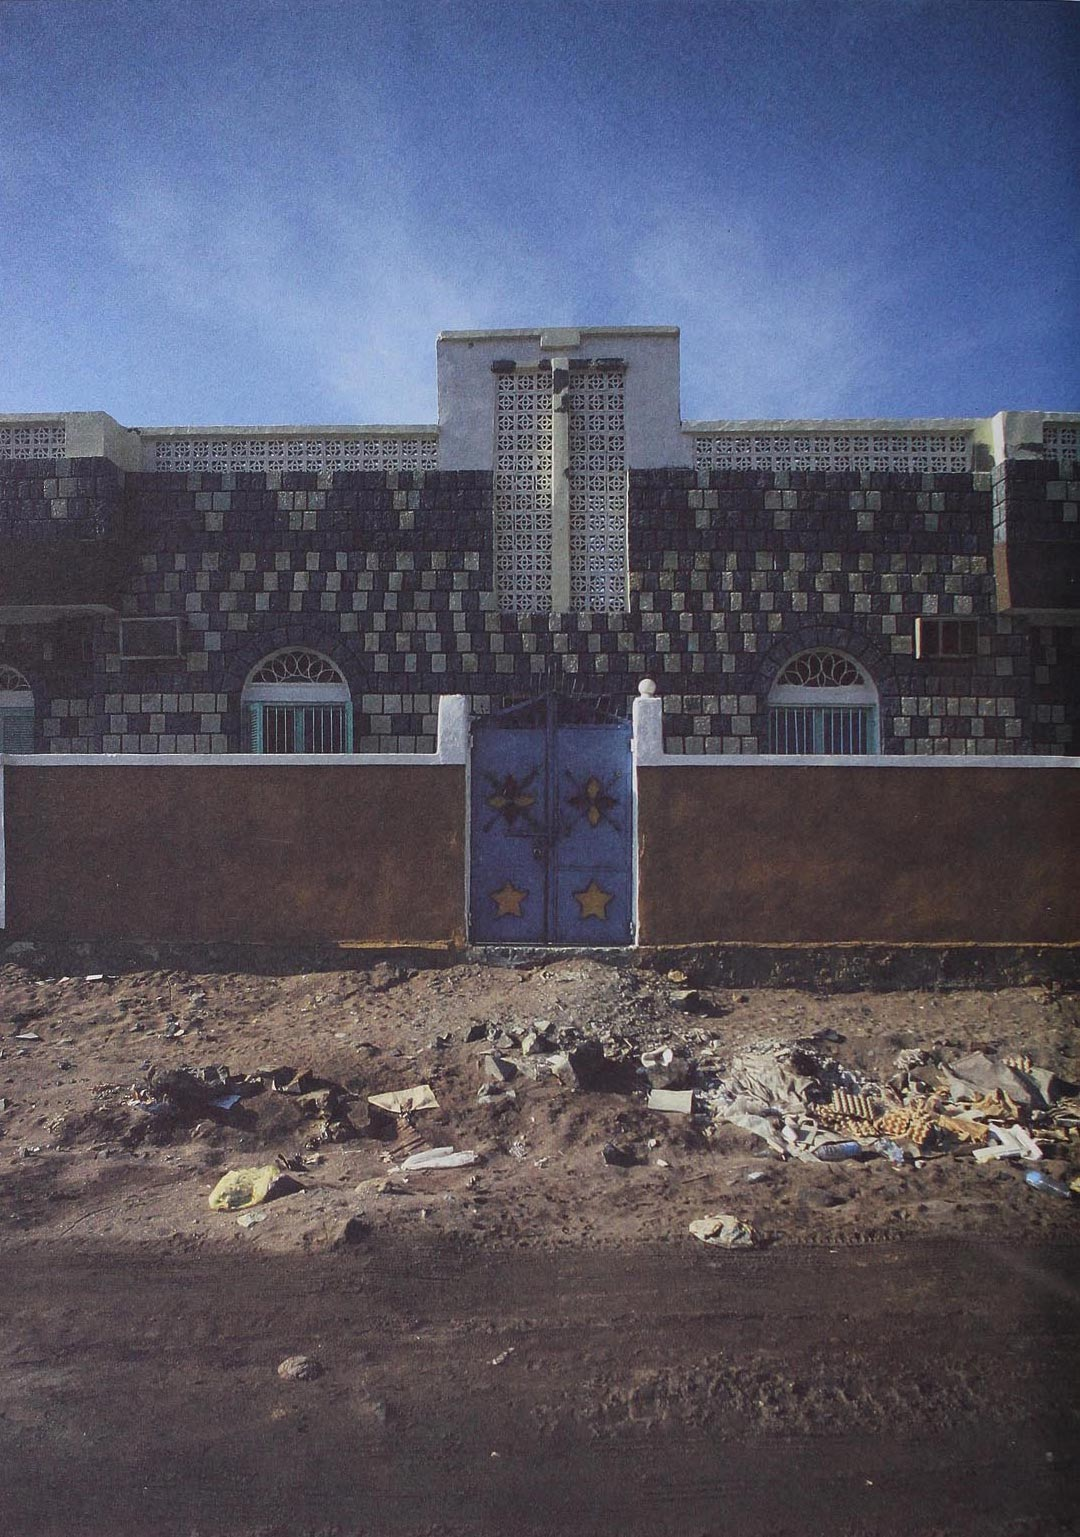 Al Hodeida, North Yemen, 1980. Photograph by E.Sottsass